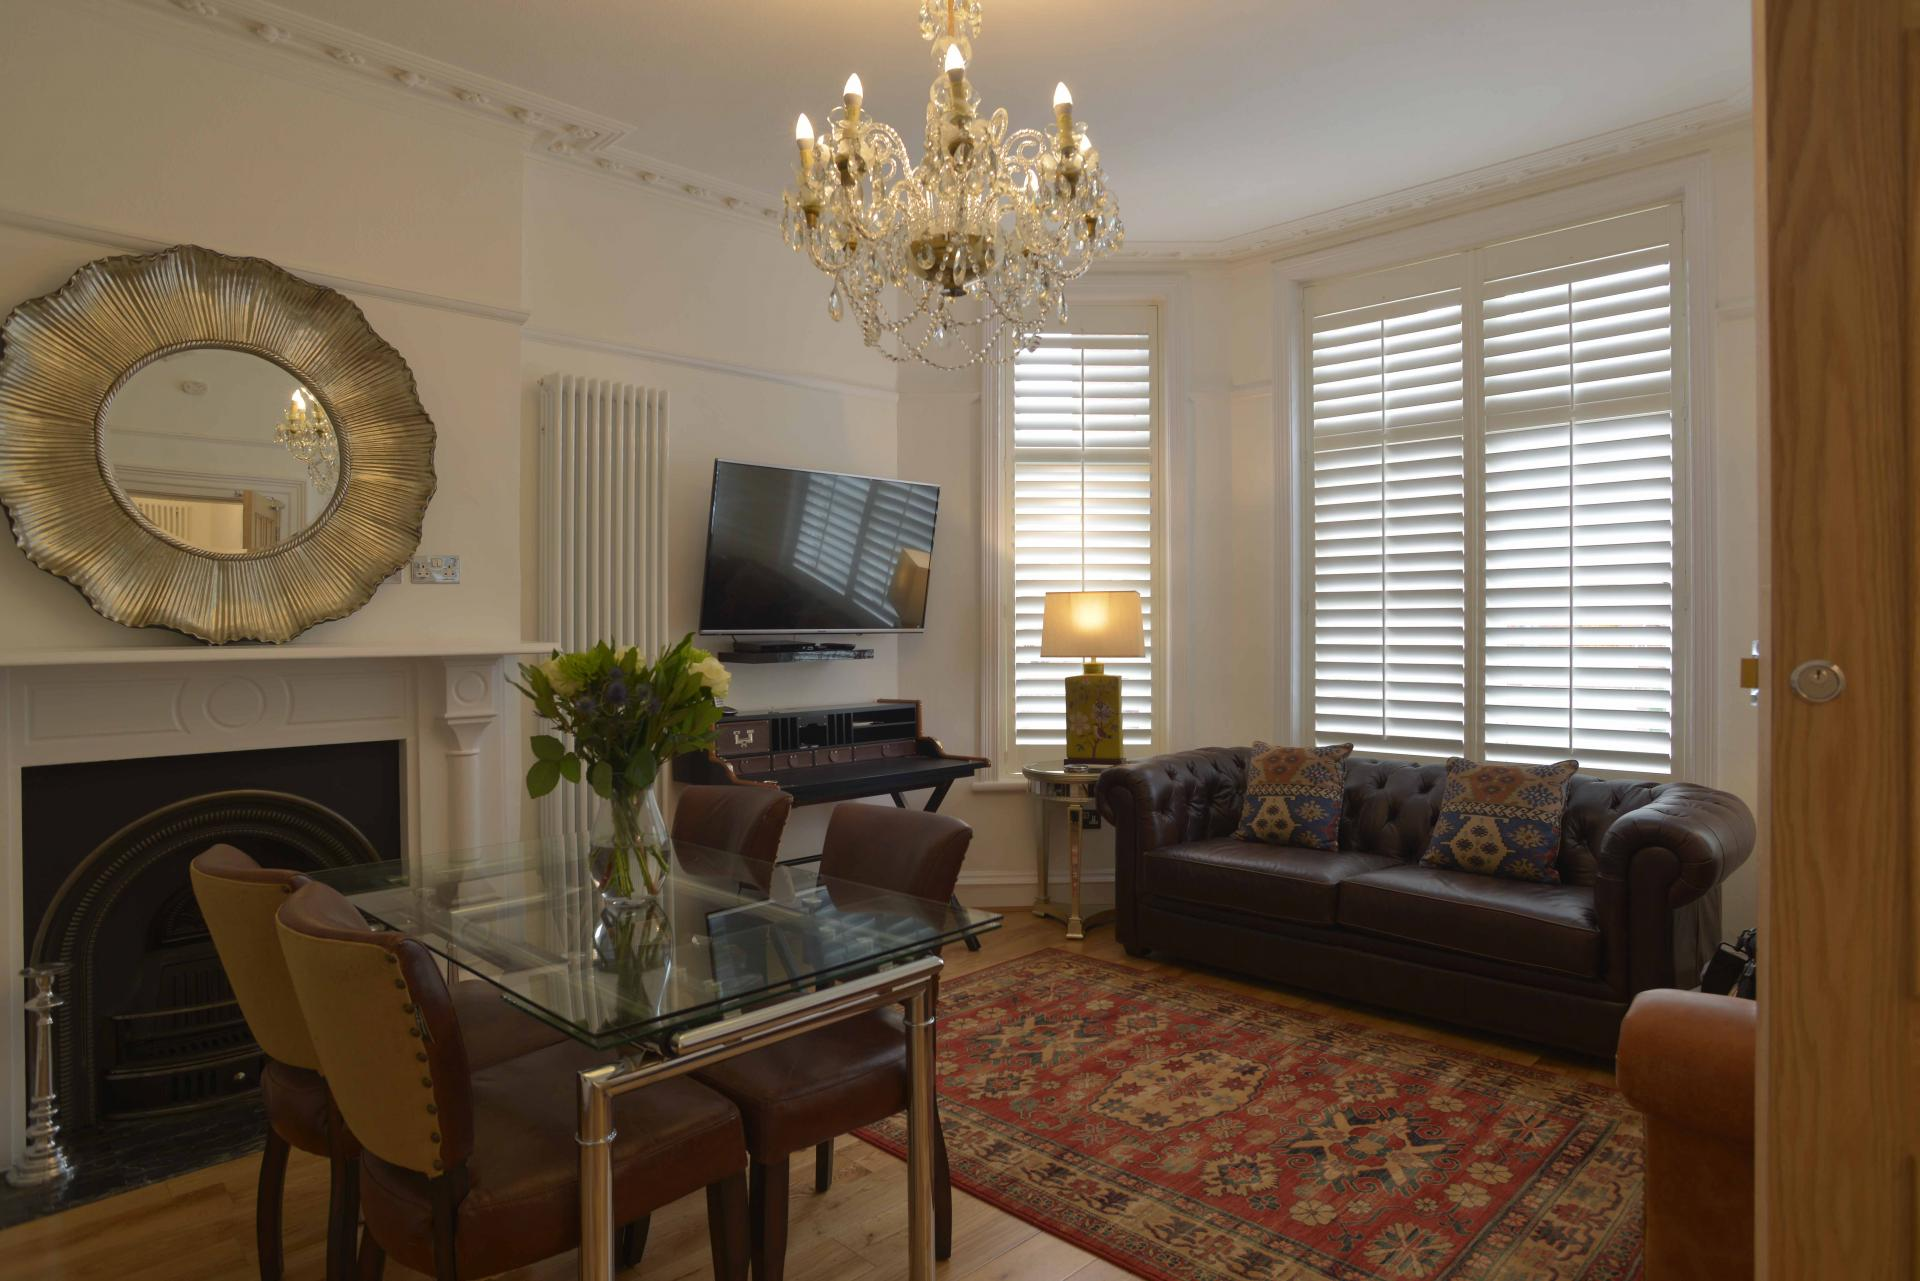 Living area at Hawk House, Centre, St Albans - Citybase Apartments